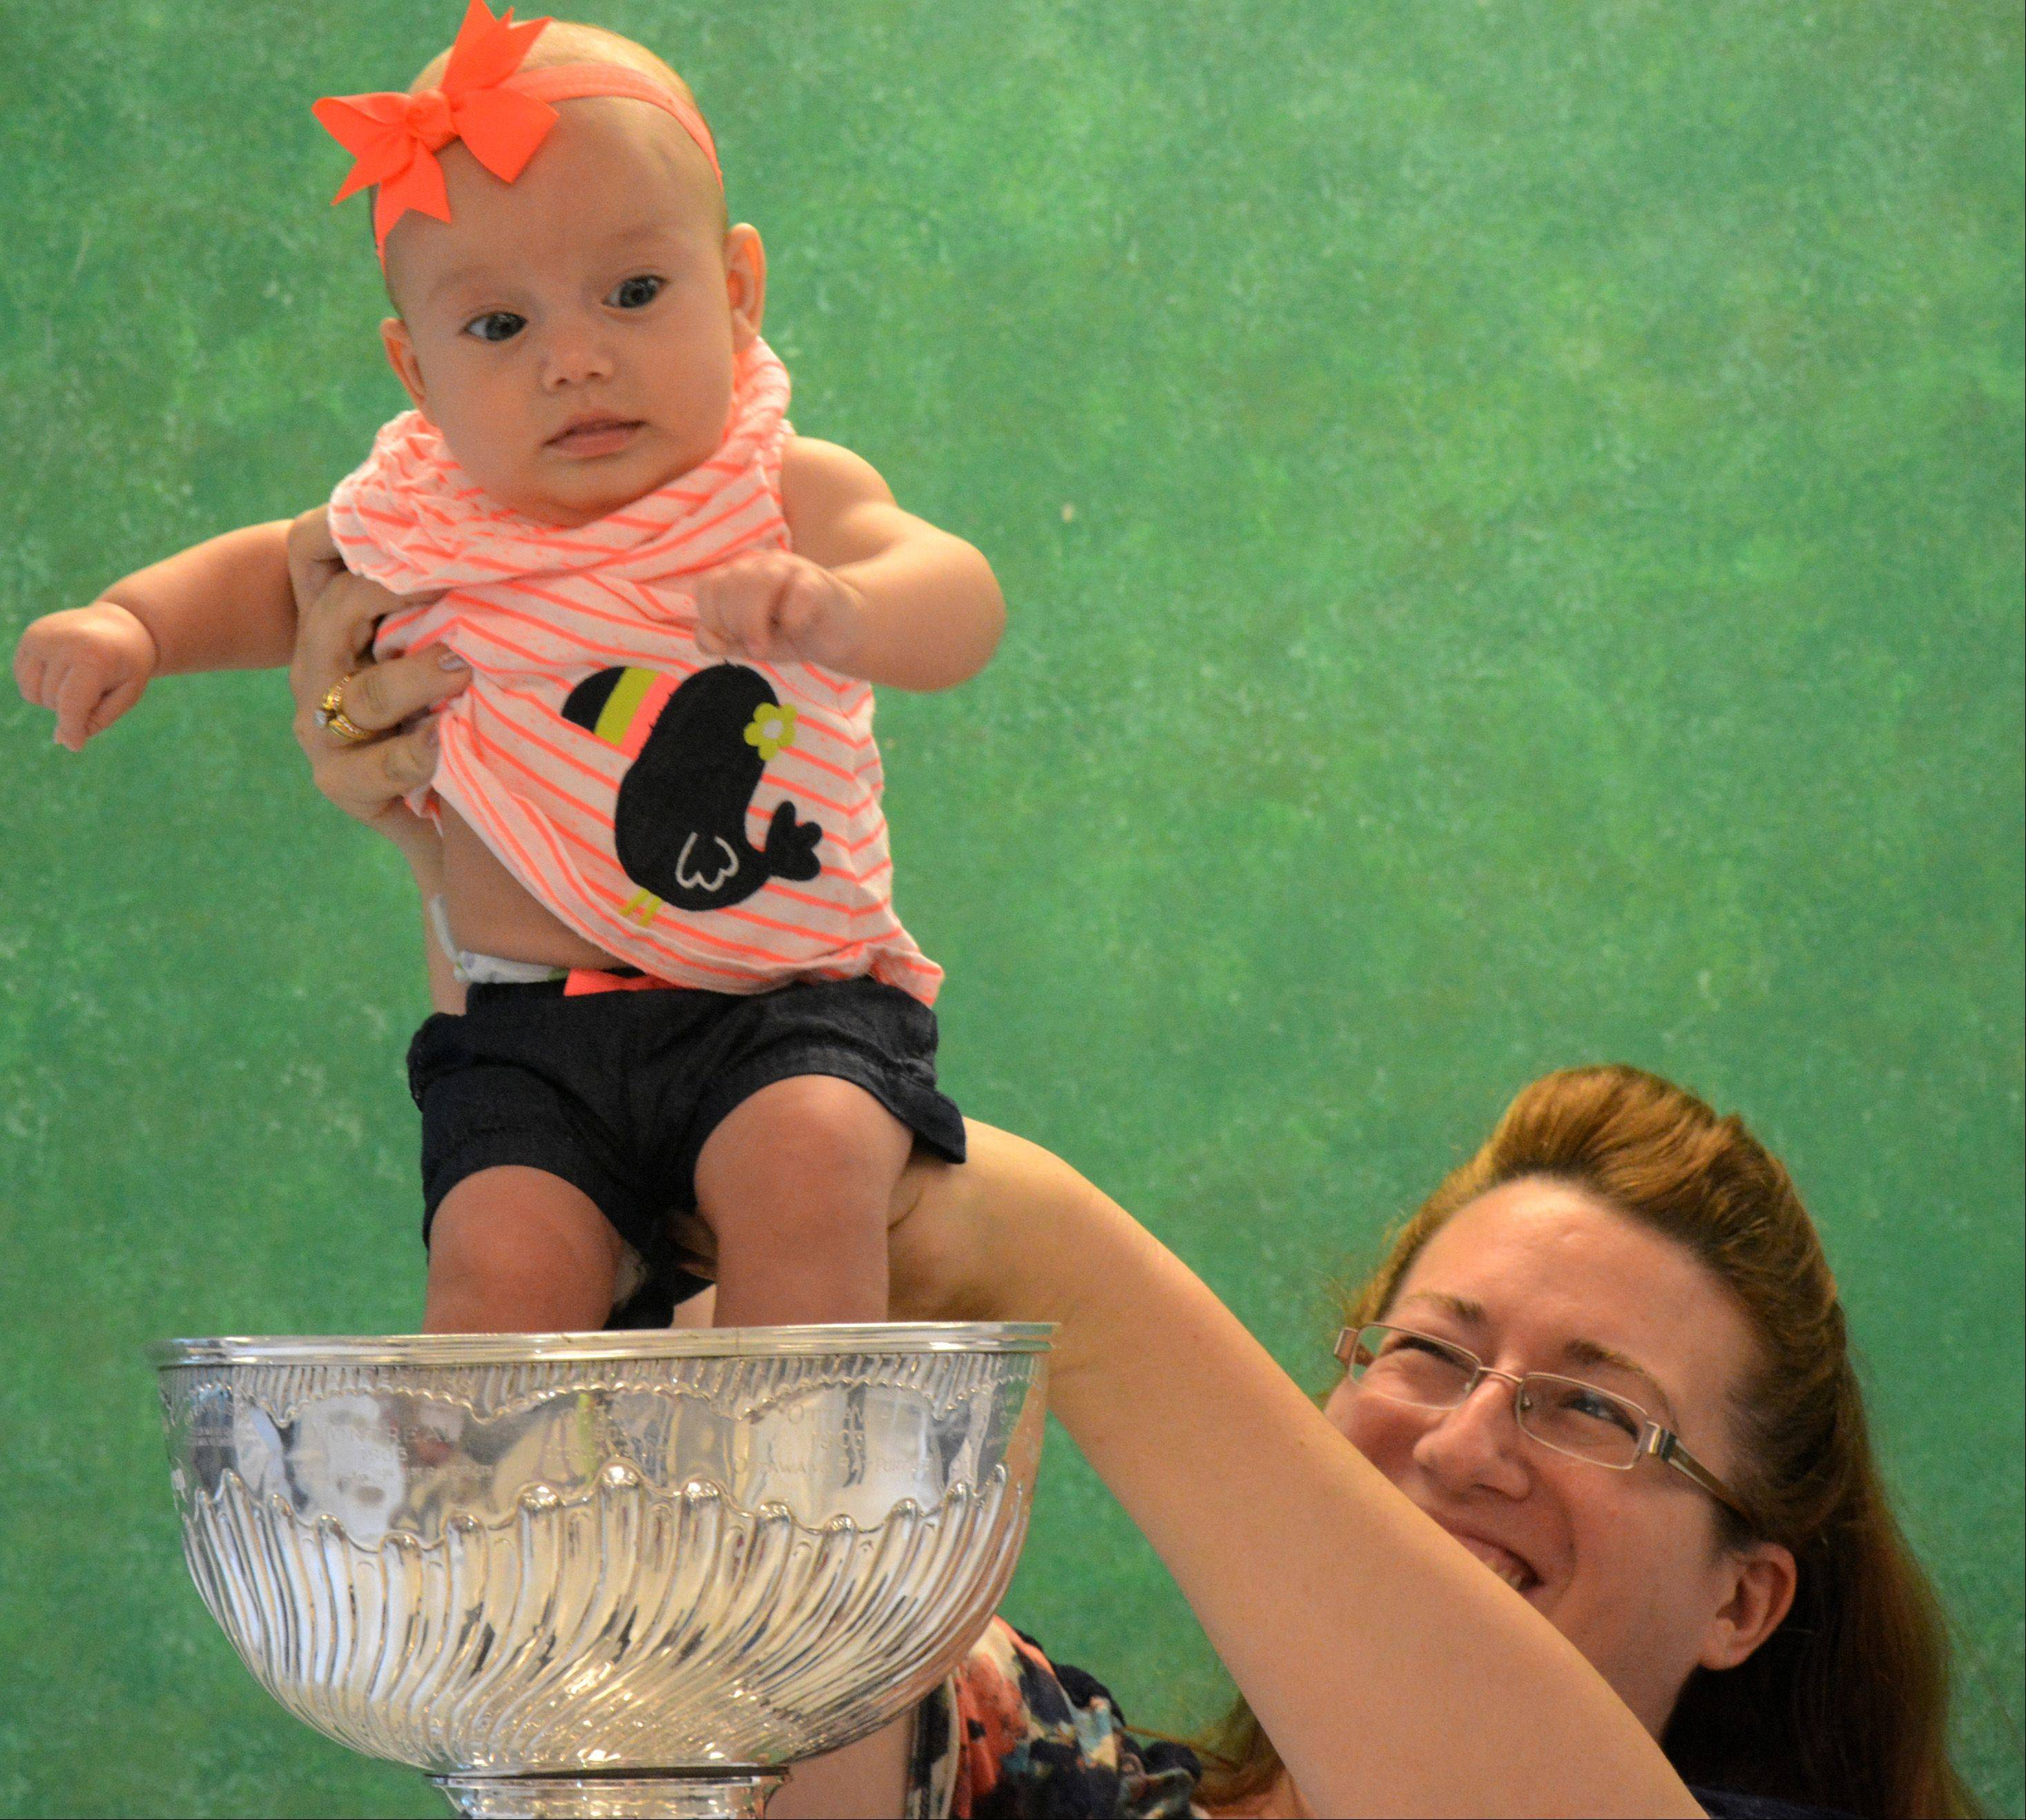 Dave Dvorak/ddvorak@dailyherald.comCandace Lewnard, of Mount Prospect, holds daughter Sofia, 4 months, in the Stanley Cup at the Daily Herald office Friday in Arlington Heights.